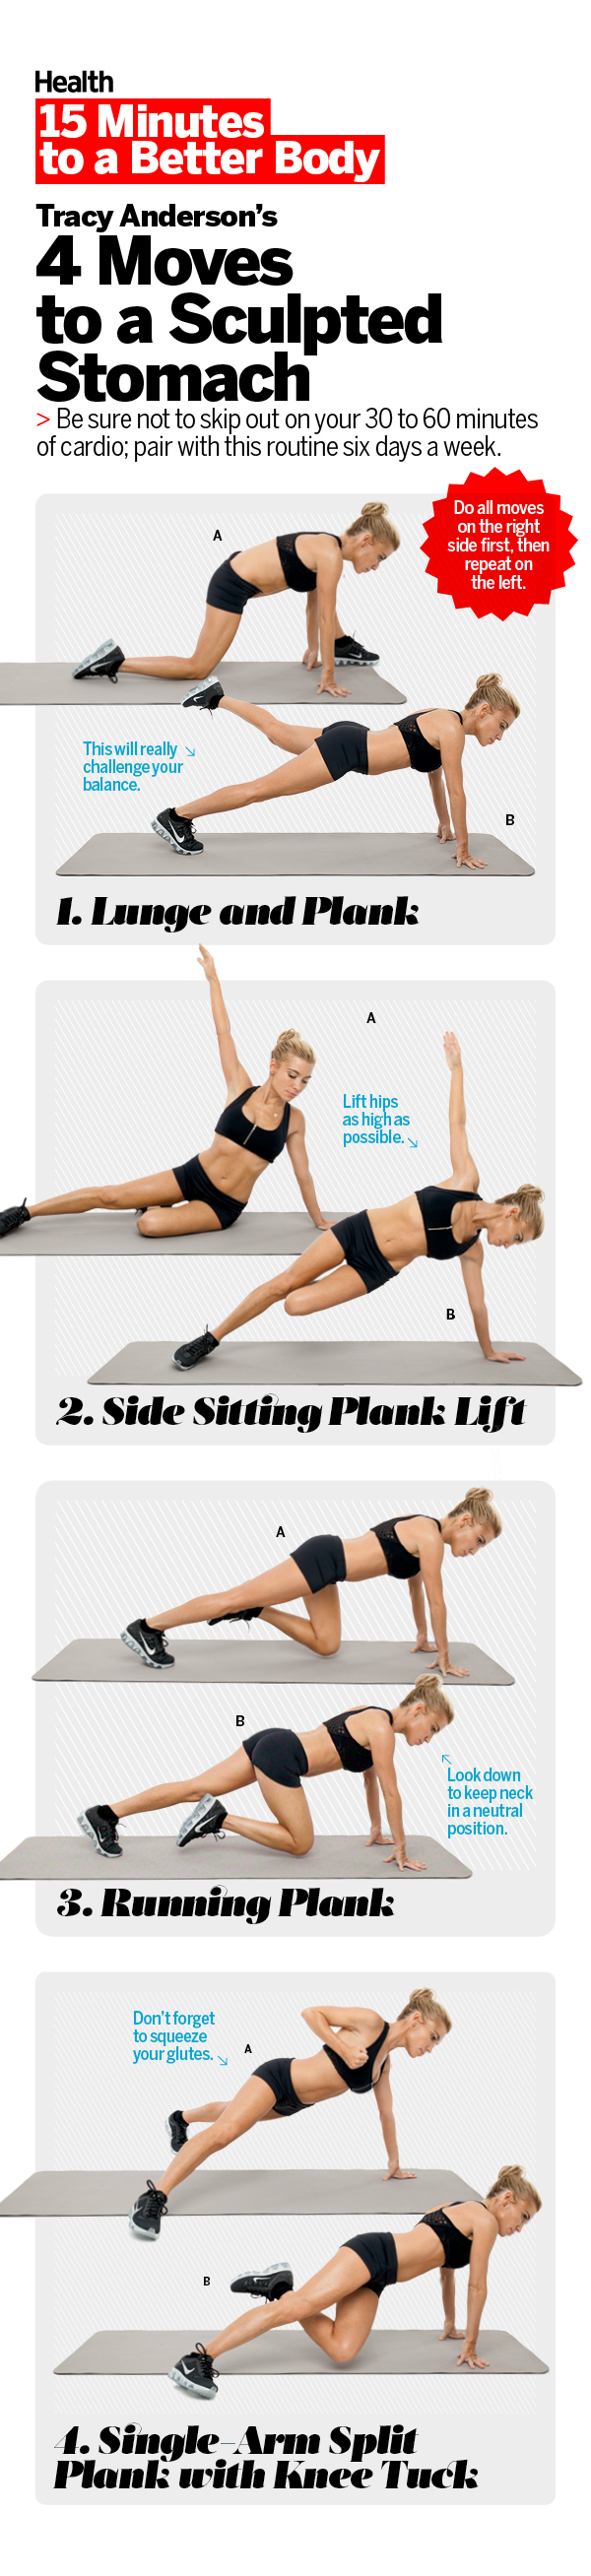 4 Ab-Sculpting Plank Variations: For a sculpted stomach, you'll need to work out every single muscle in your core. Celebrity trainer Tracy Anderson shows you how to do four powerful variations on the plank, designed to tighten and tone your middle. Do these moves six times a week, paired with 30 minutes of cardio, for major results.